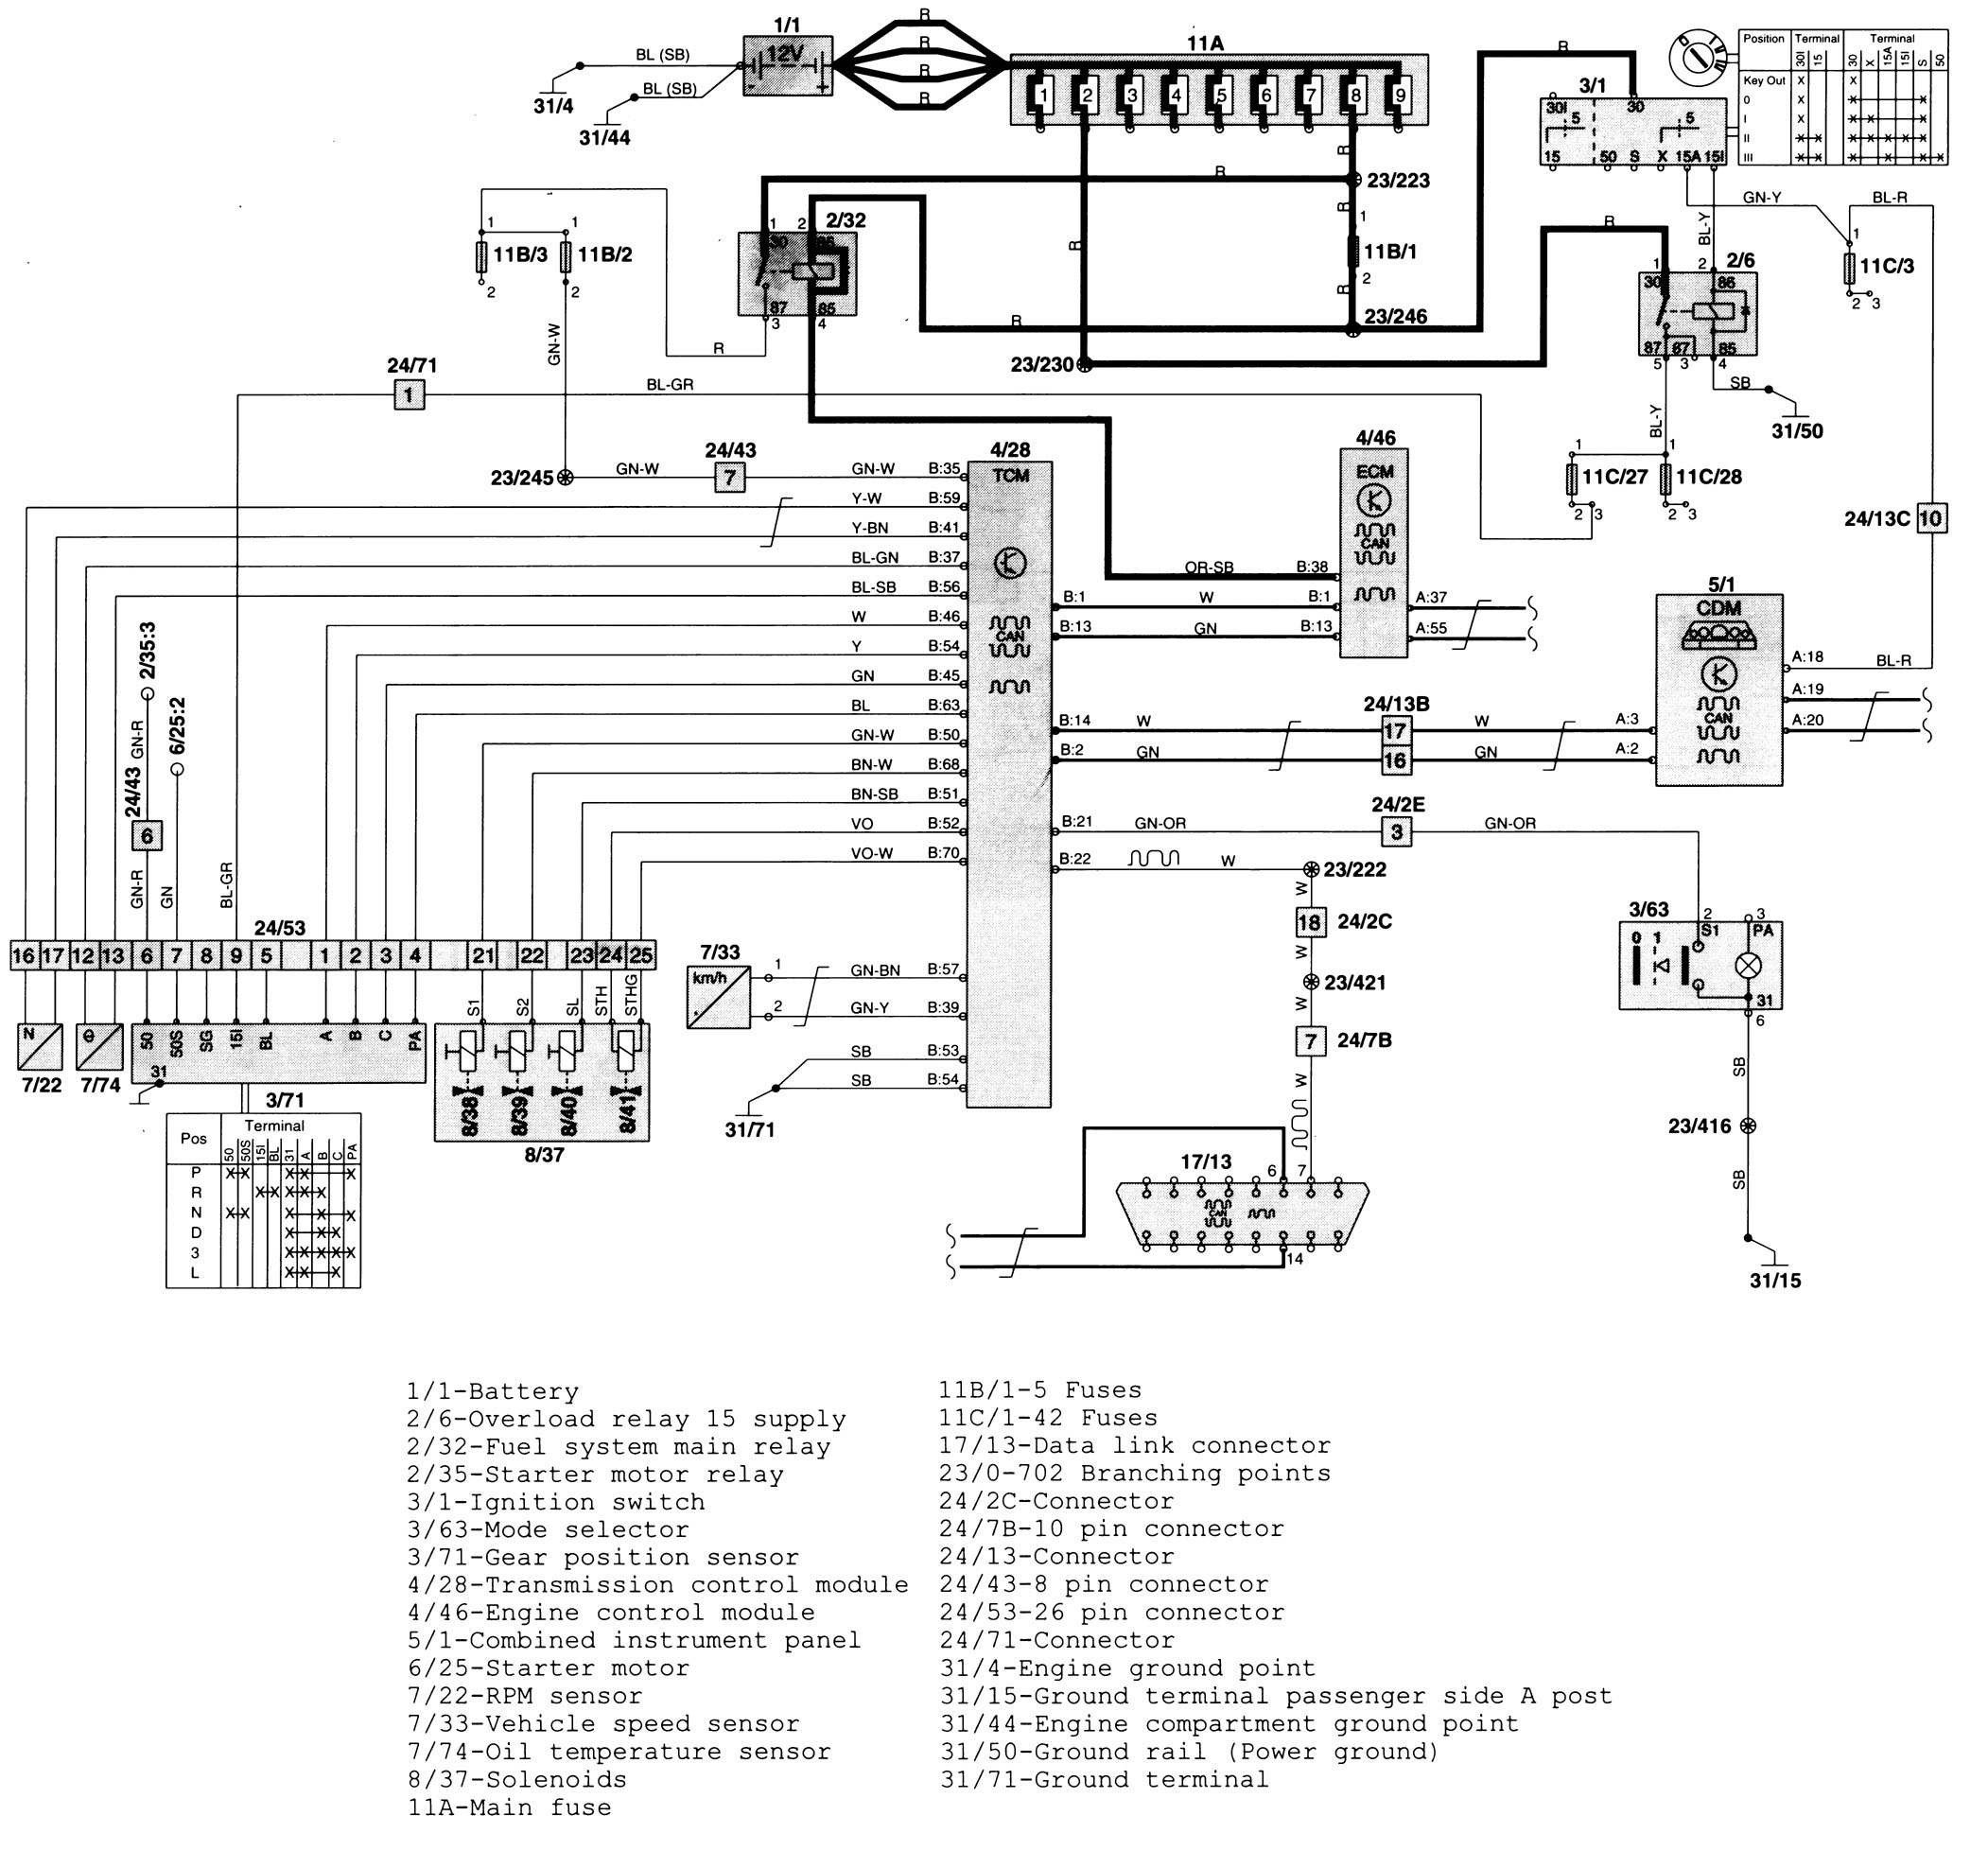 volvo wiring diagram how to do a c70 1999 diagrams transmission controls